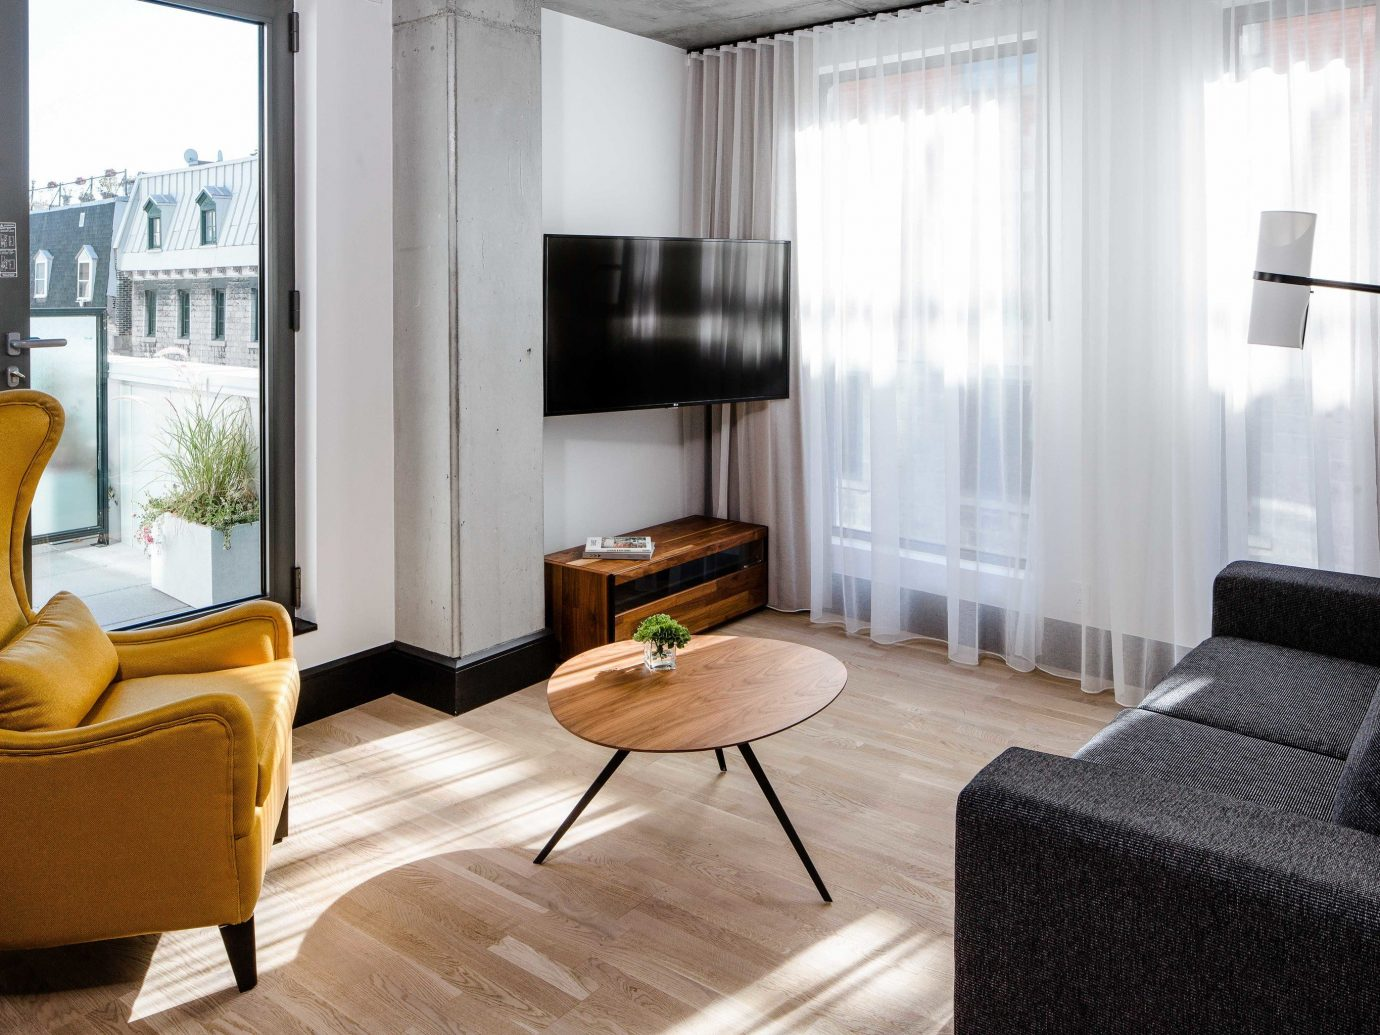 Boutique Hotels Chicago Hotels Living indoor room floor sofa window living room interior design property furniture Suite table chair flooring real estate interior designer angle loft apartment coffee table window treatment hardwood wood flooring area Bedroom decorated leather